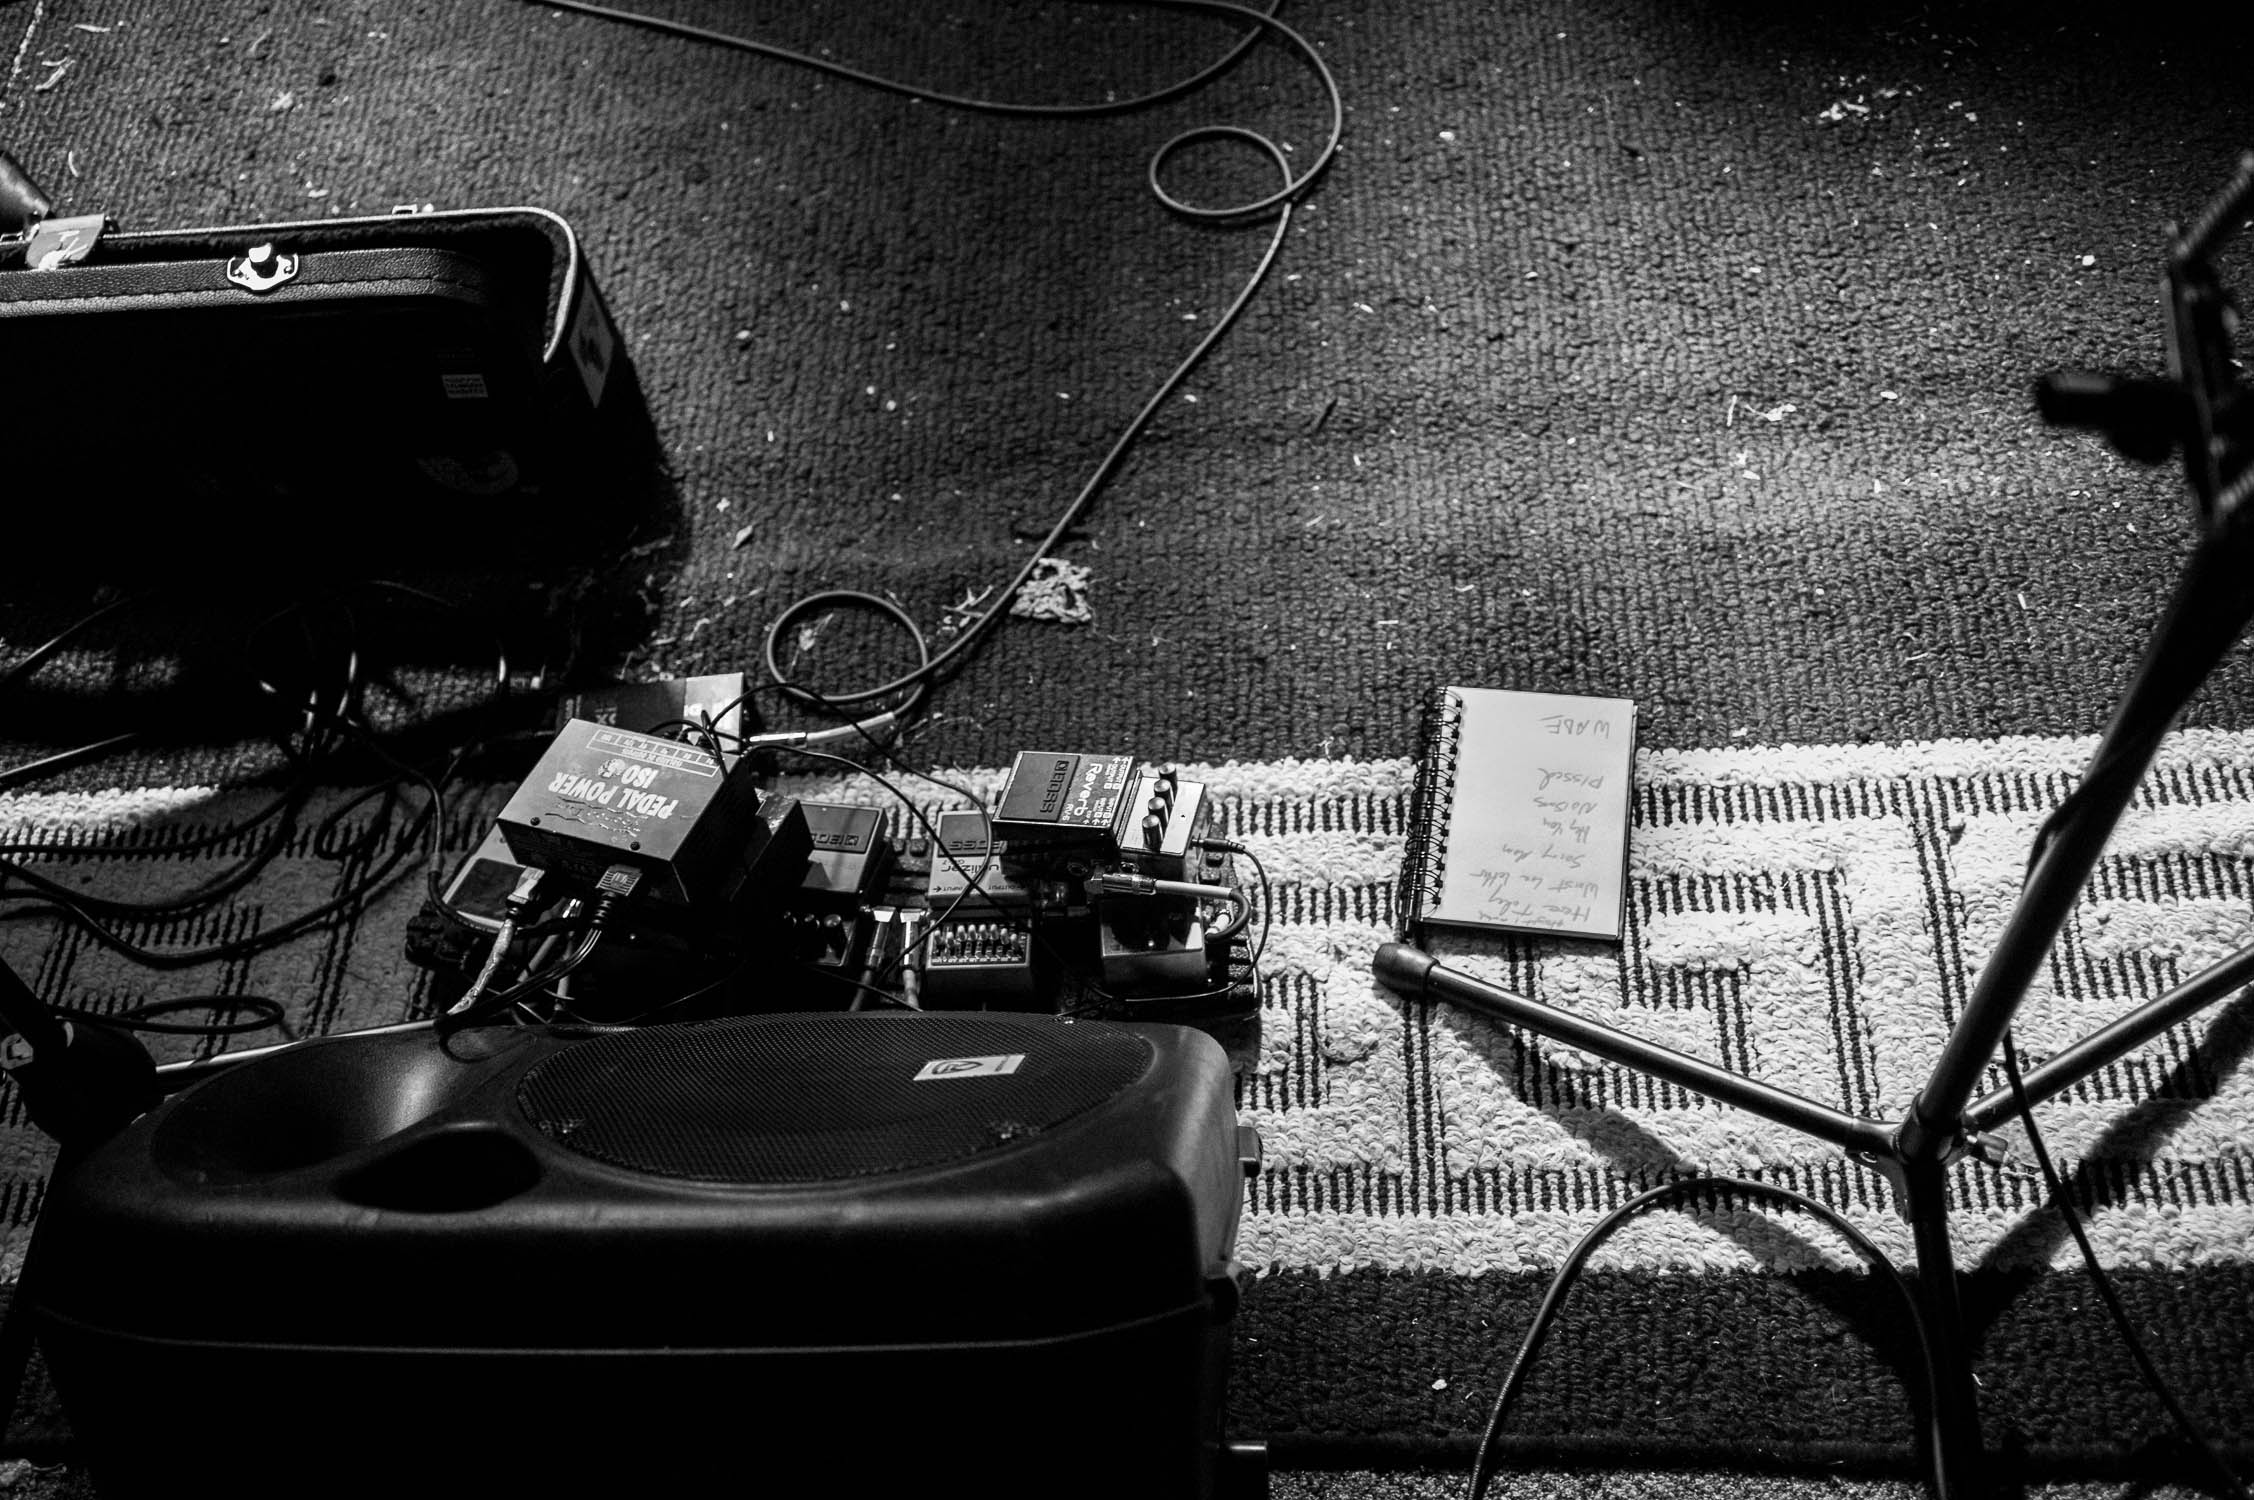 Effects pedals and a set list before a show at Avenue D.I.Y.